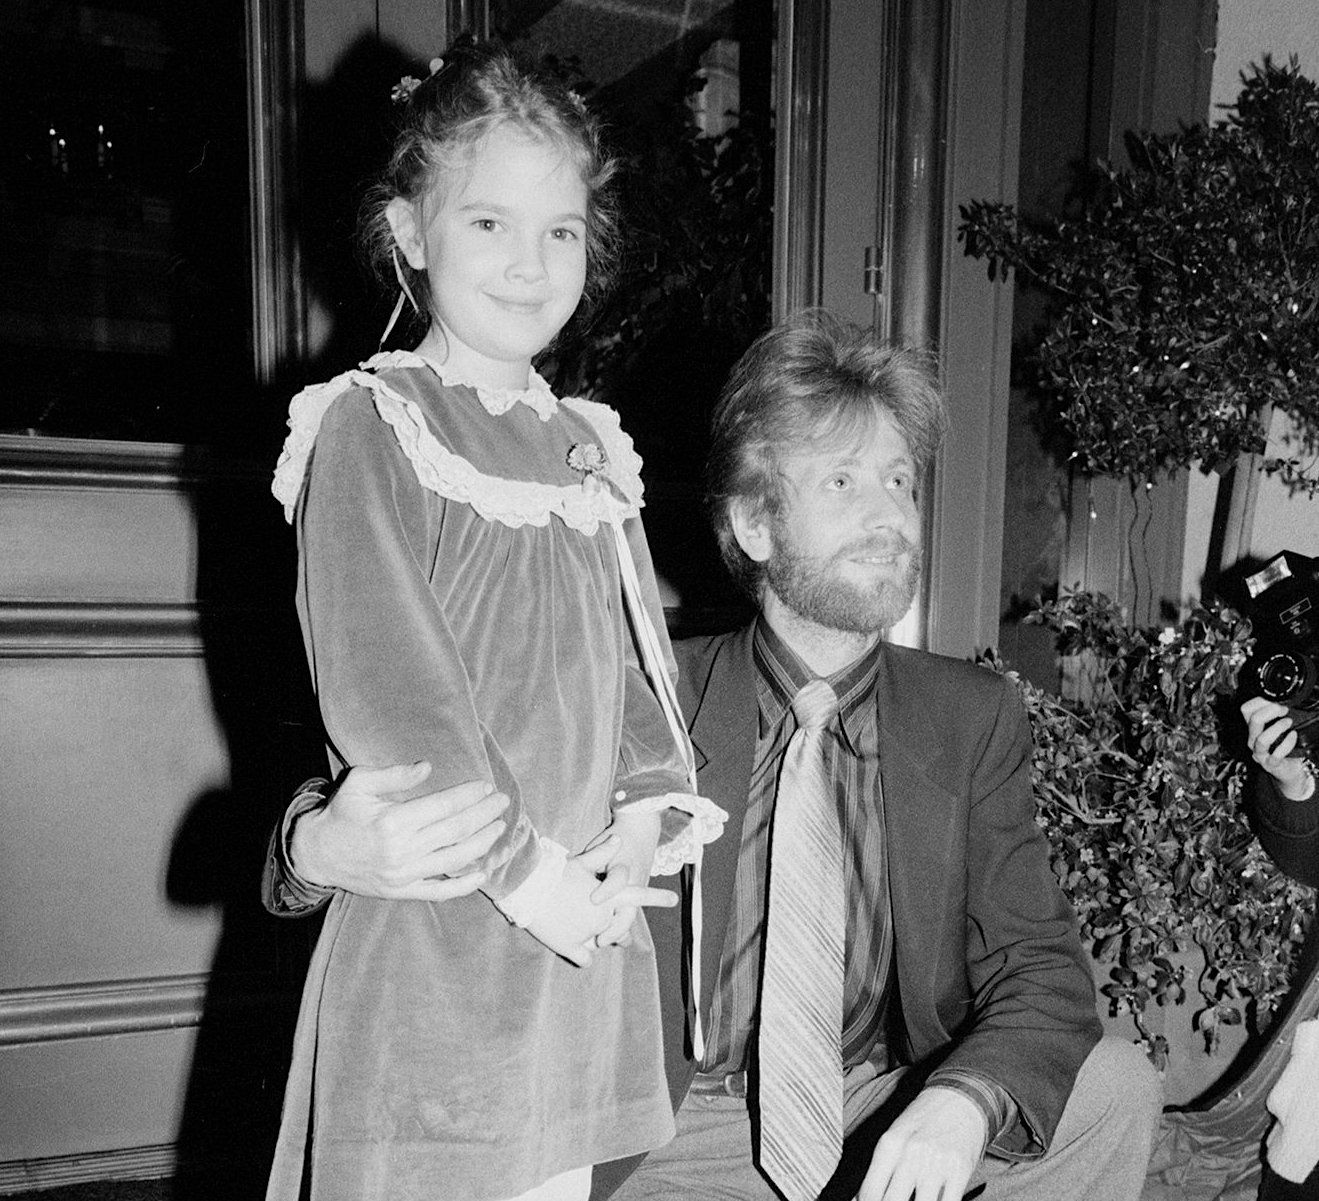 Image Credit: Getty Images/Drew Barrymore with her grandfather